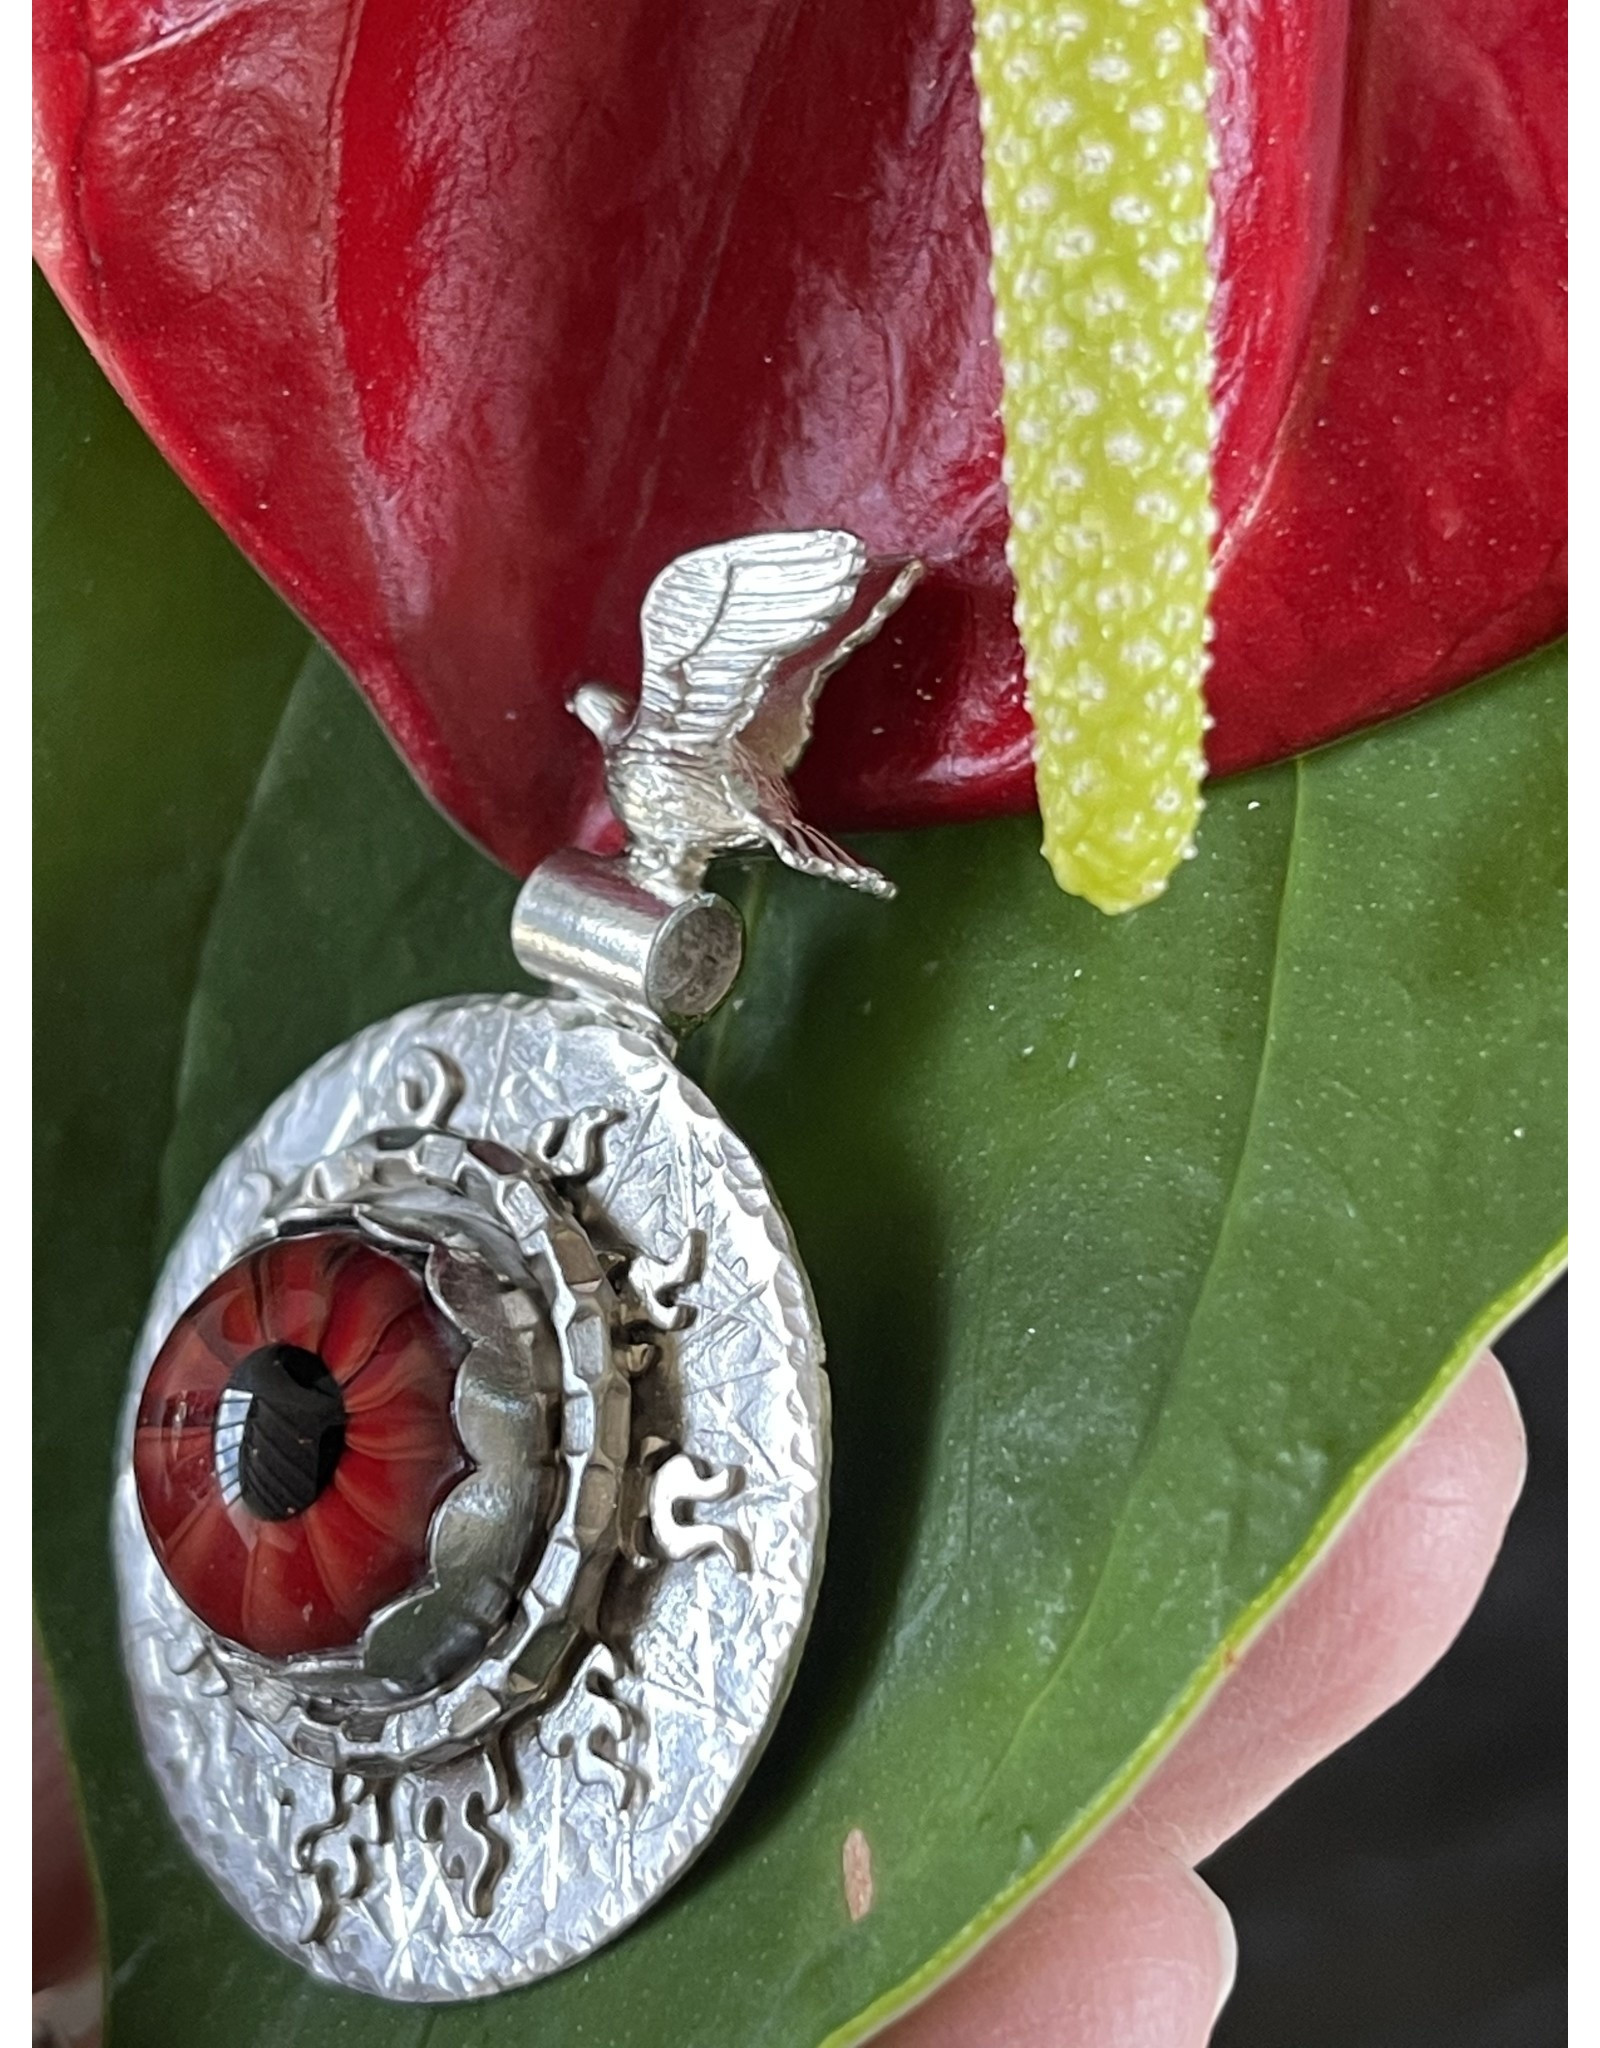 Annette Colby - Jeweler Lampwork Glass Red Eye Necklace Flying Bird by Annette Colby